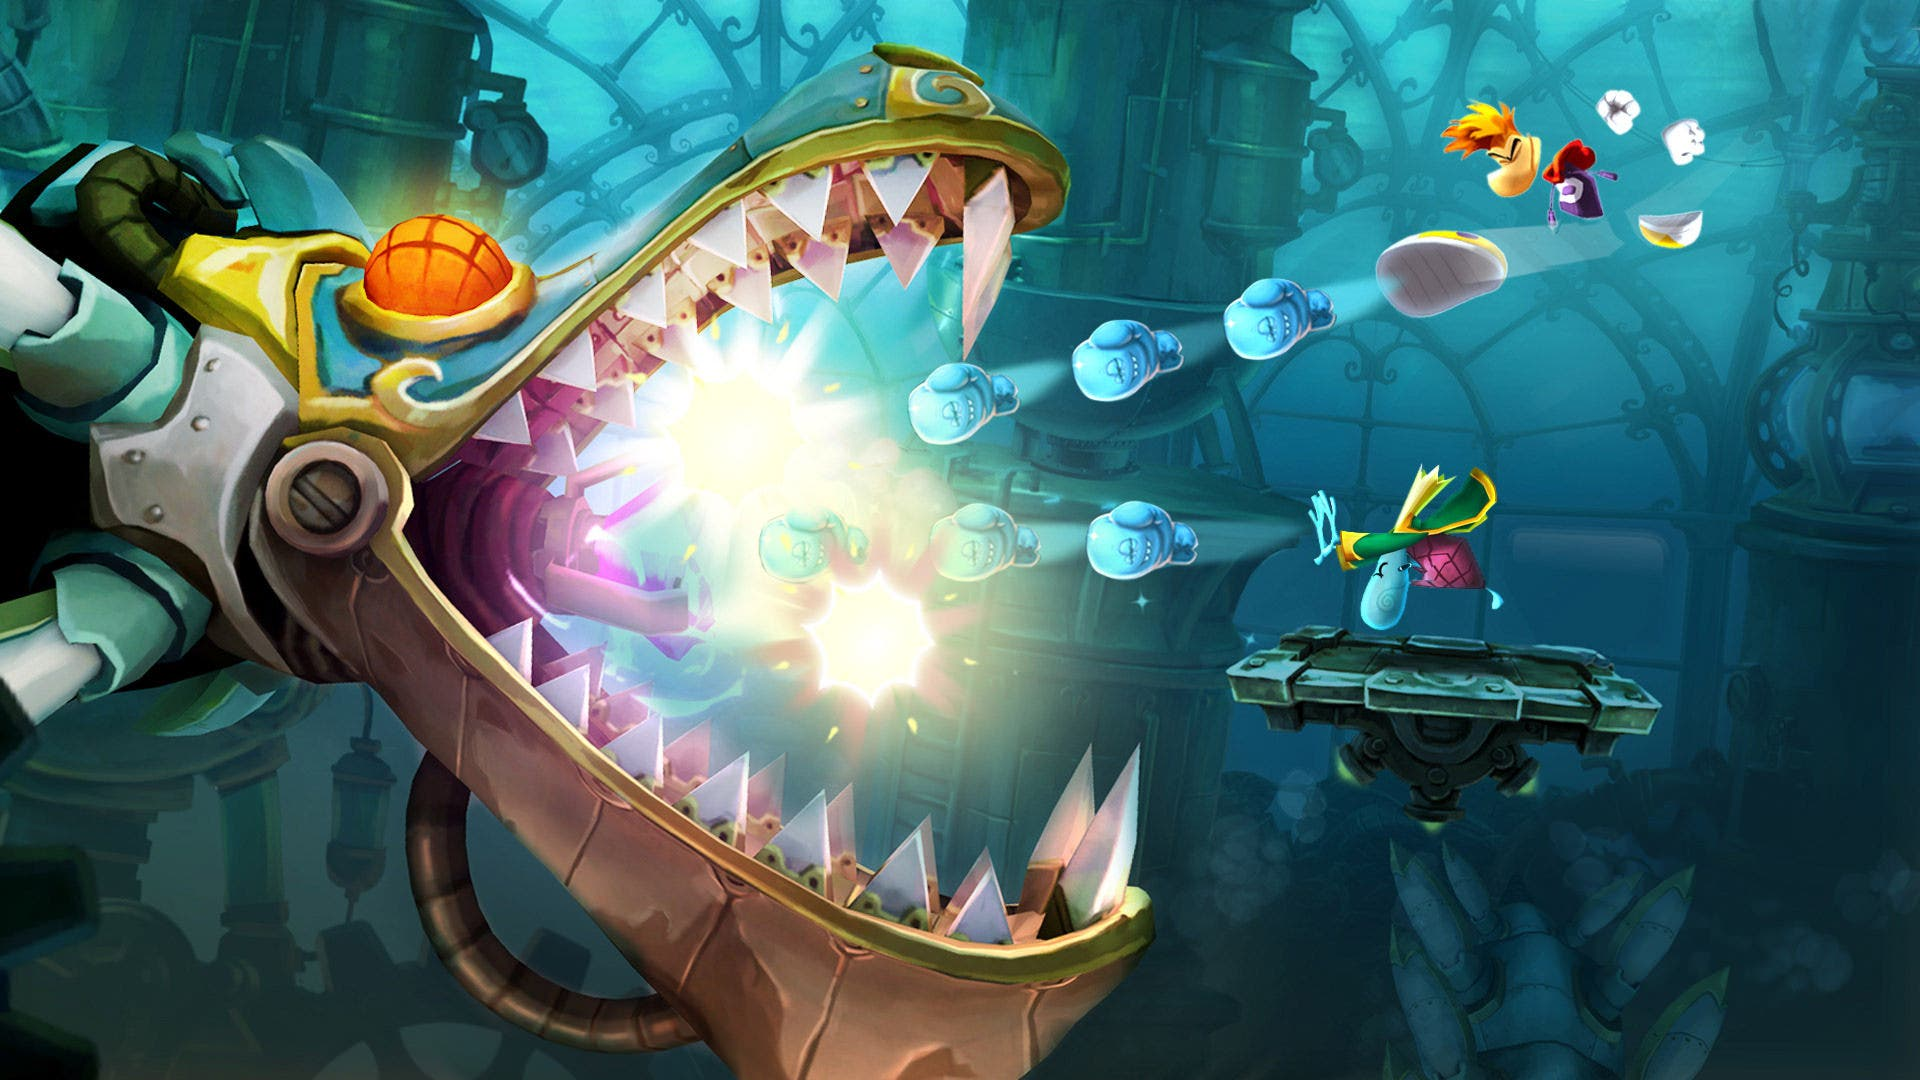 Vídeo comparativo de 'Rayman Legends' Wii U vs. Xbox 360